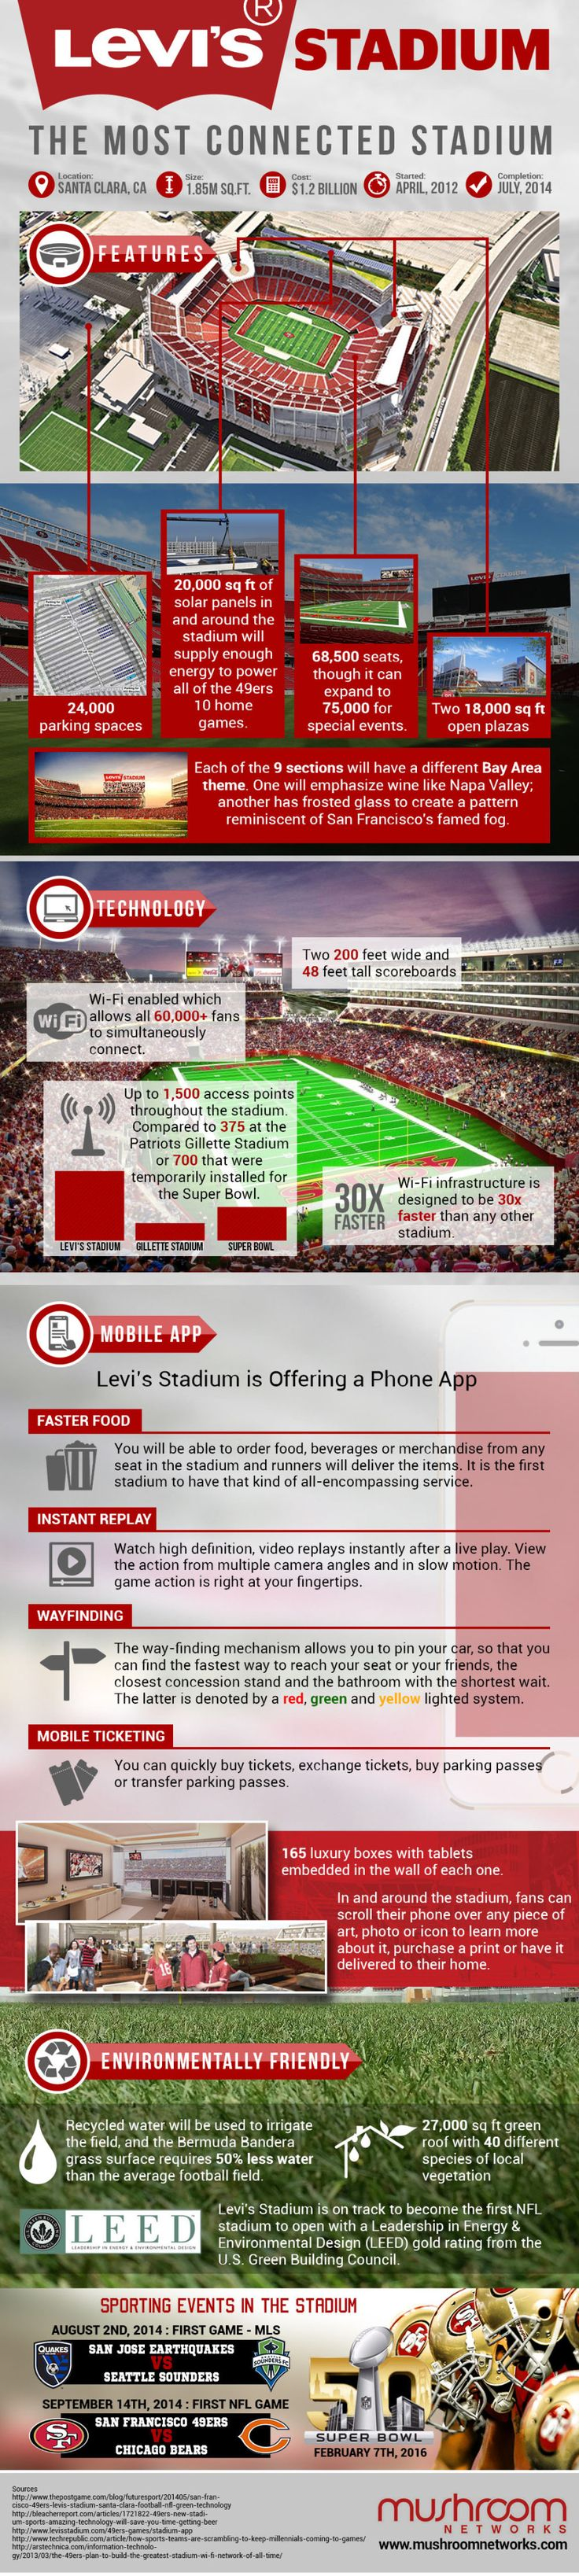 Hey NFL fans, latest from me CleanTechnica about the San Francisco 49ers new Lean Green Levis Stadium.